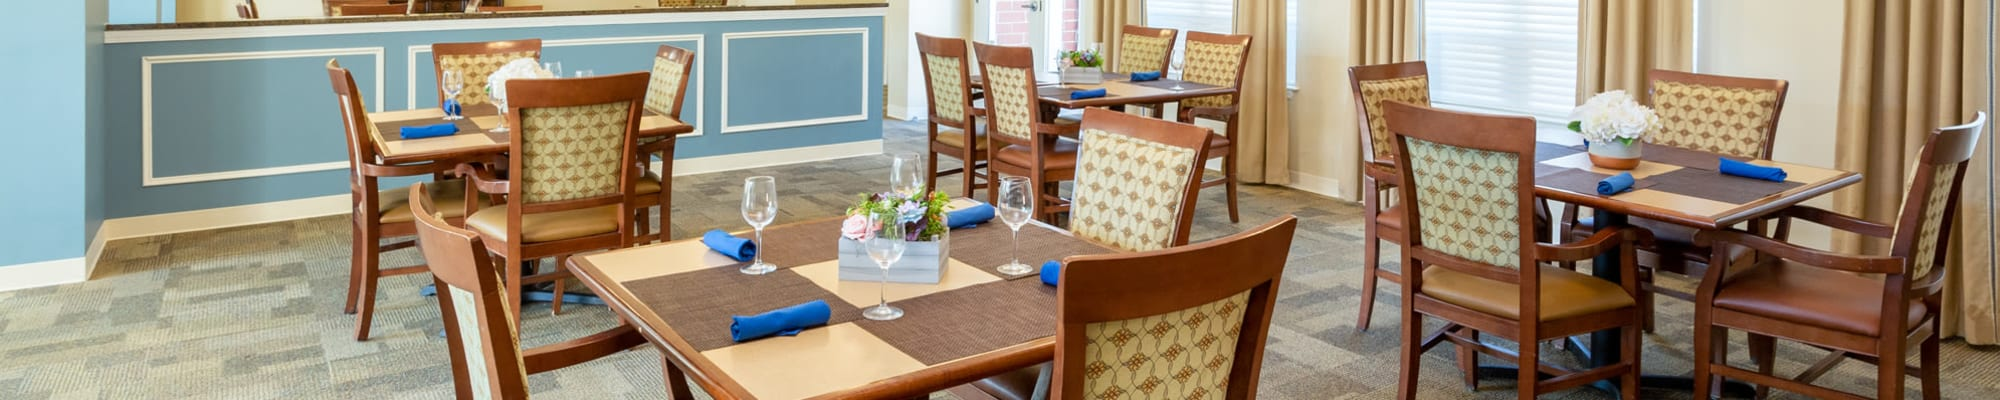 Dining at The Harmony Collection at Roanoke - Memory Care in Roanoke, Virginia